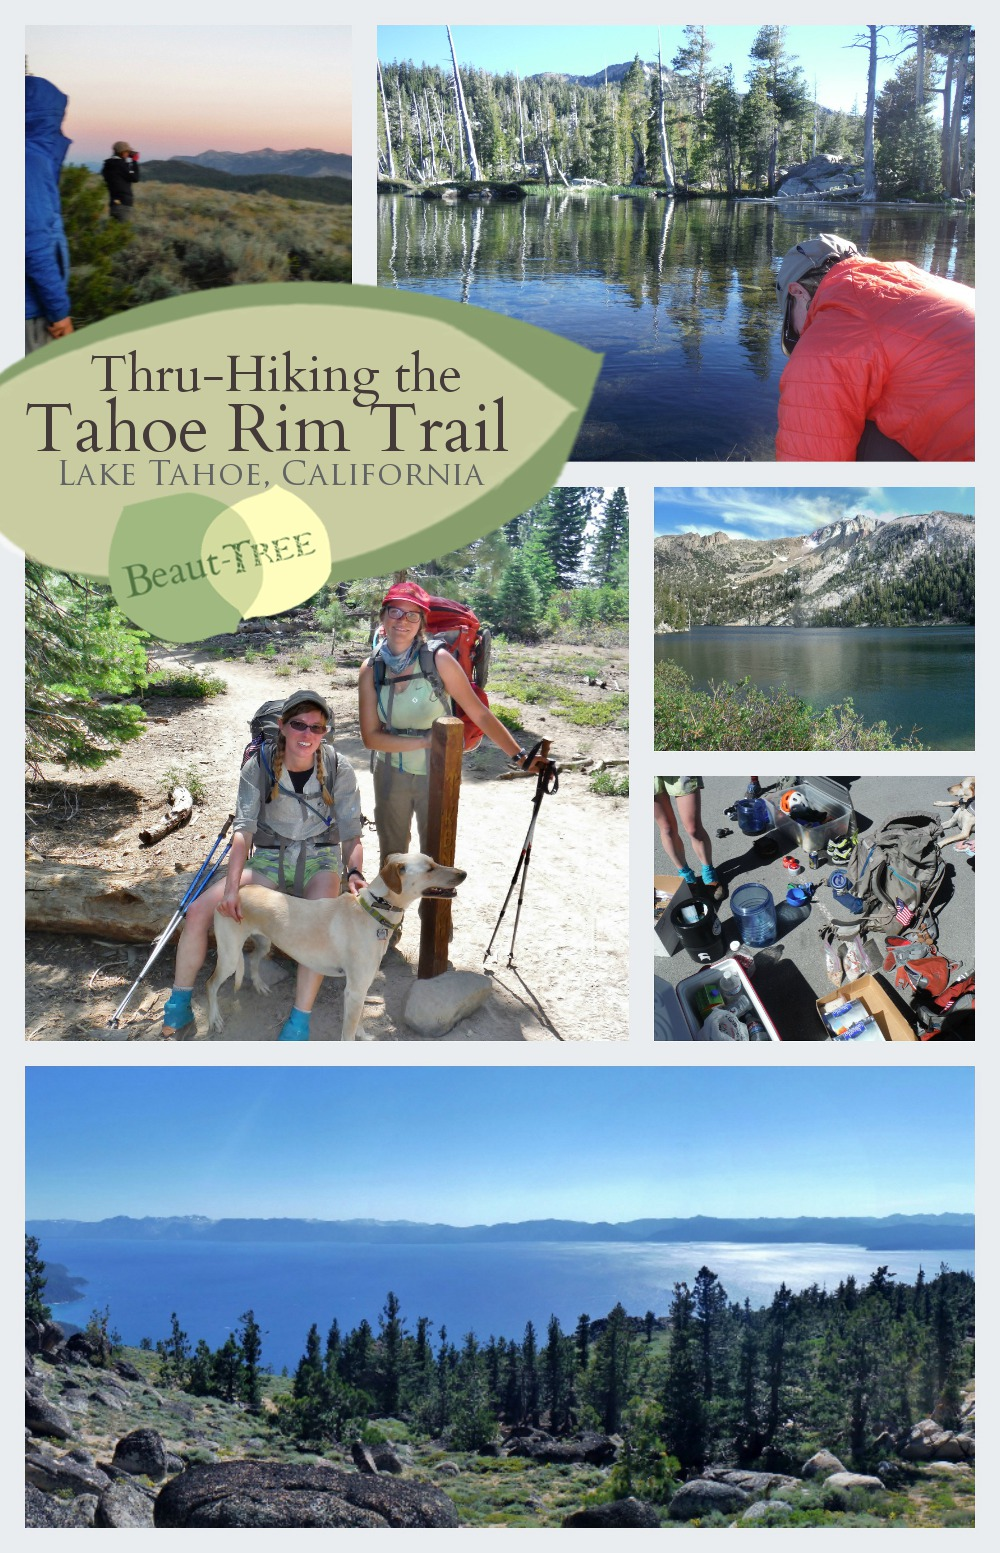 Thru-Hiking the Tahoe Rim Trial